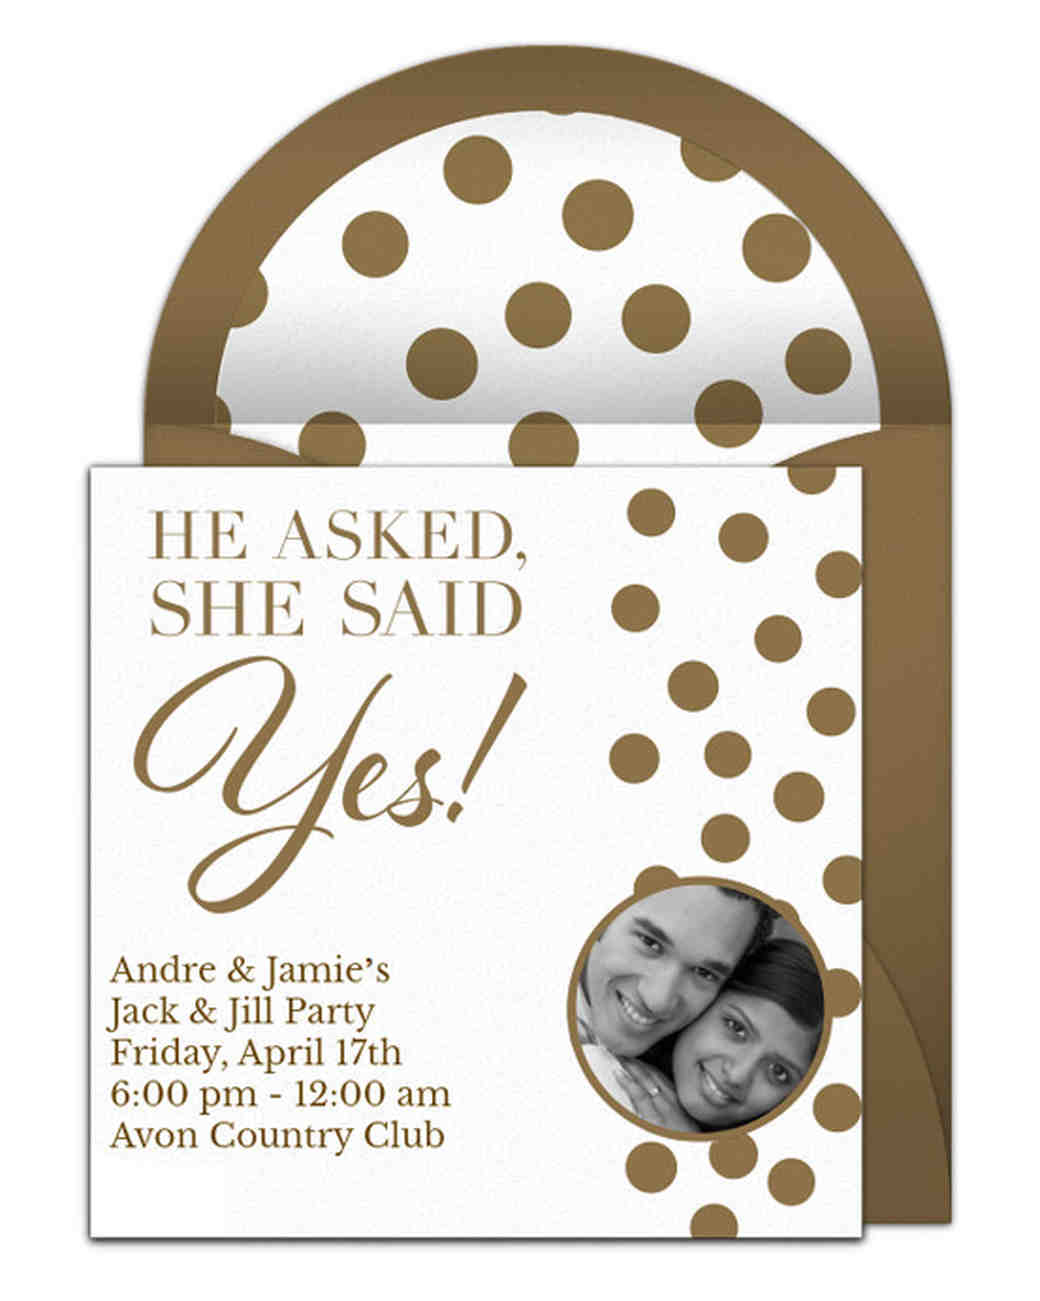 paperless engagement party invite gold polka dots